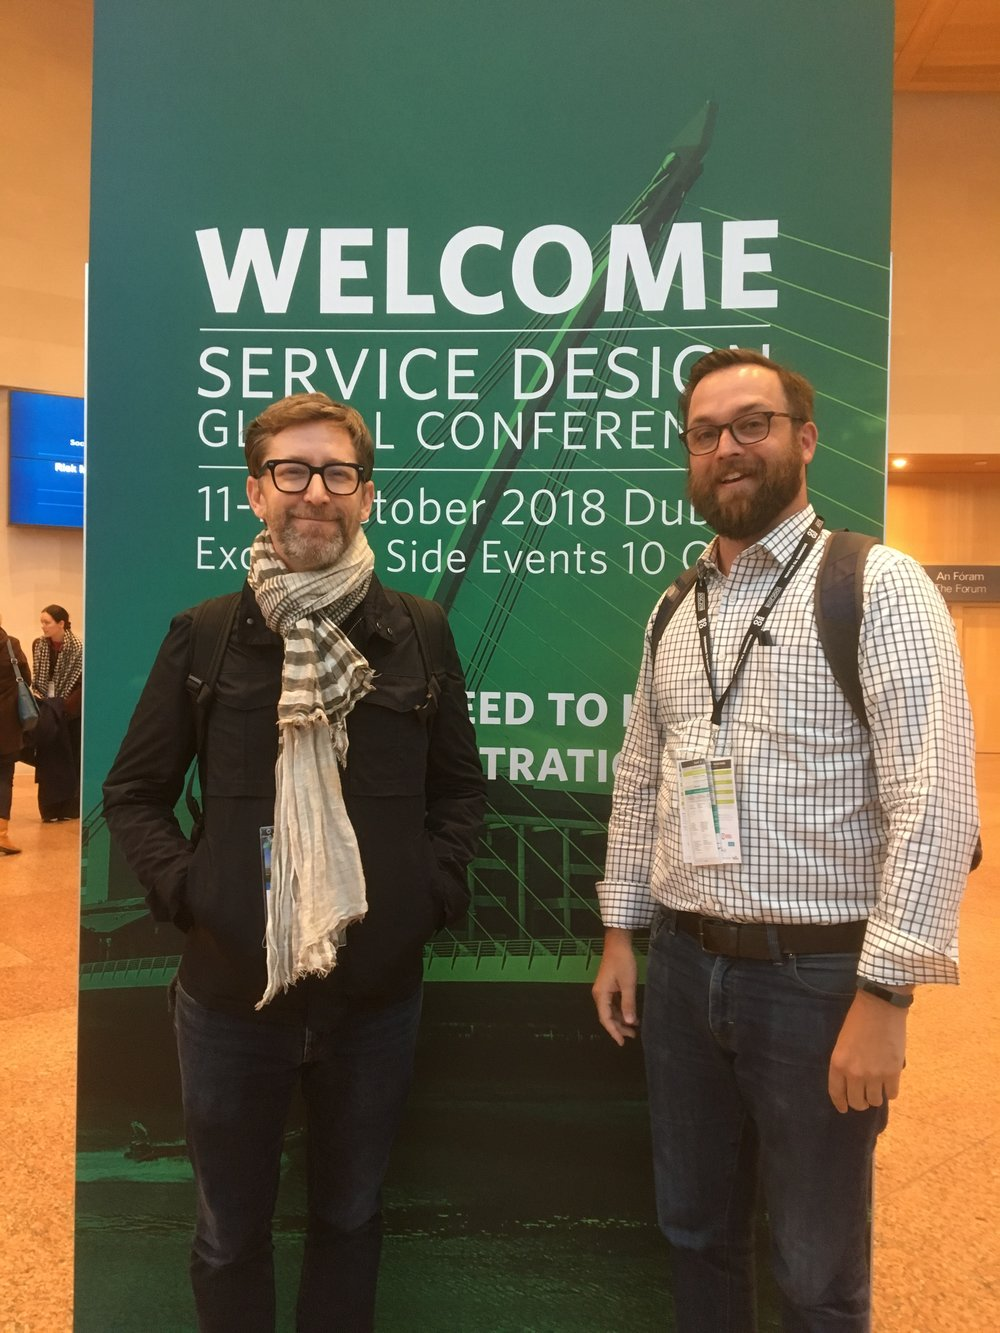 Service Design Global Conference in Dublin